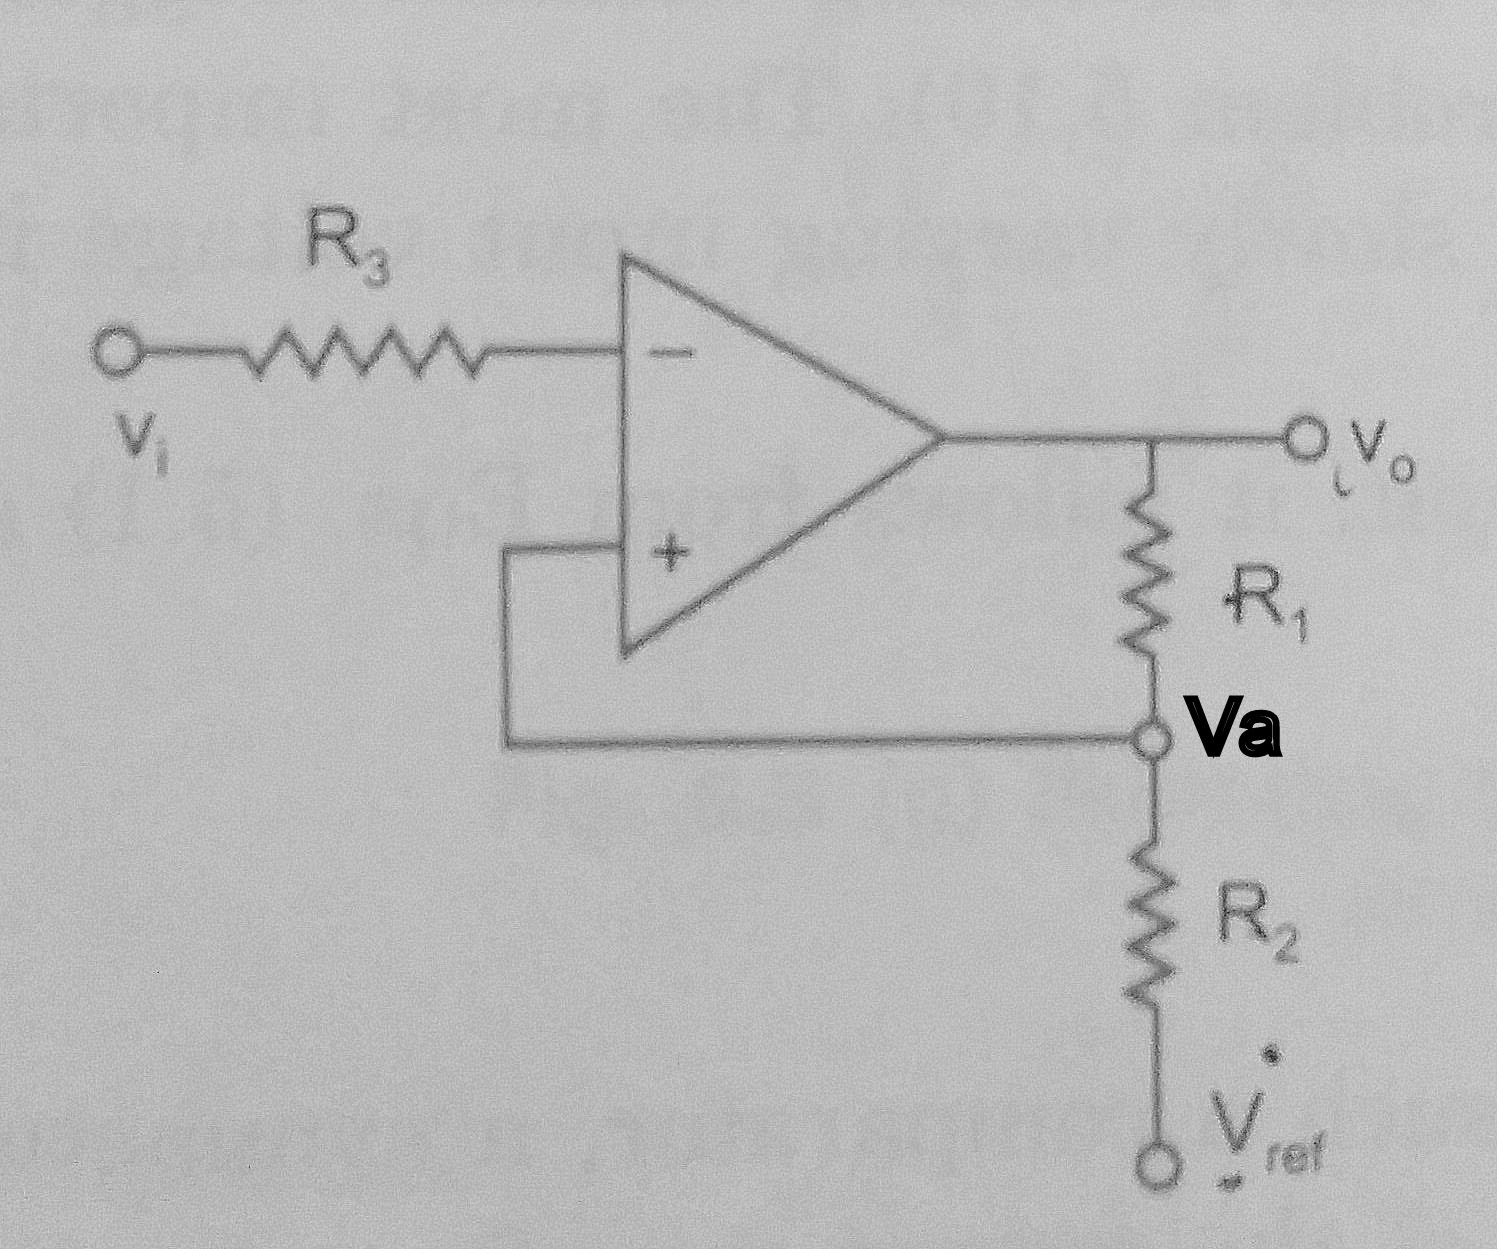 hight resolution of the major application of this comparator is to overcome the noise voltages which reduced the problem with zero crossing detector circuit it converts the